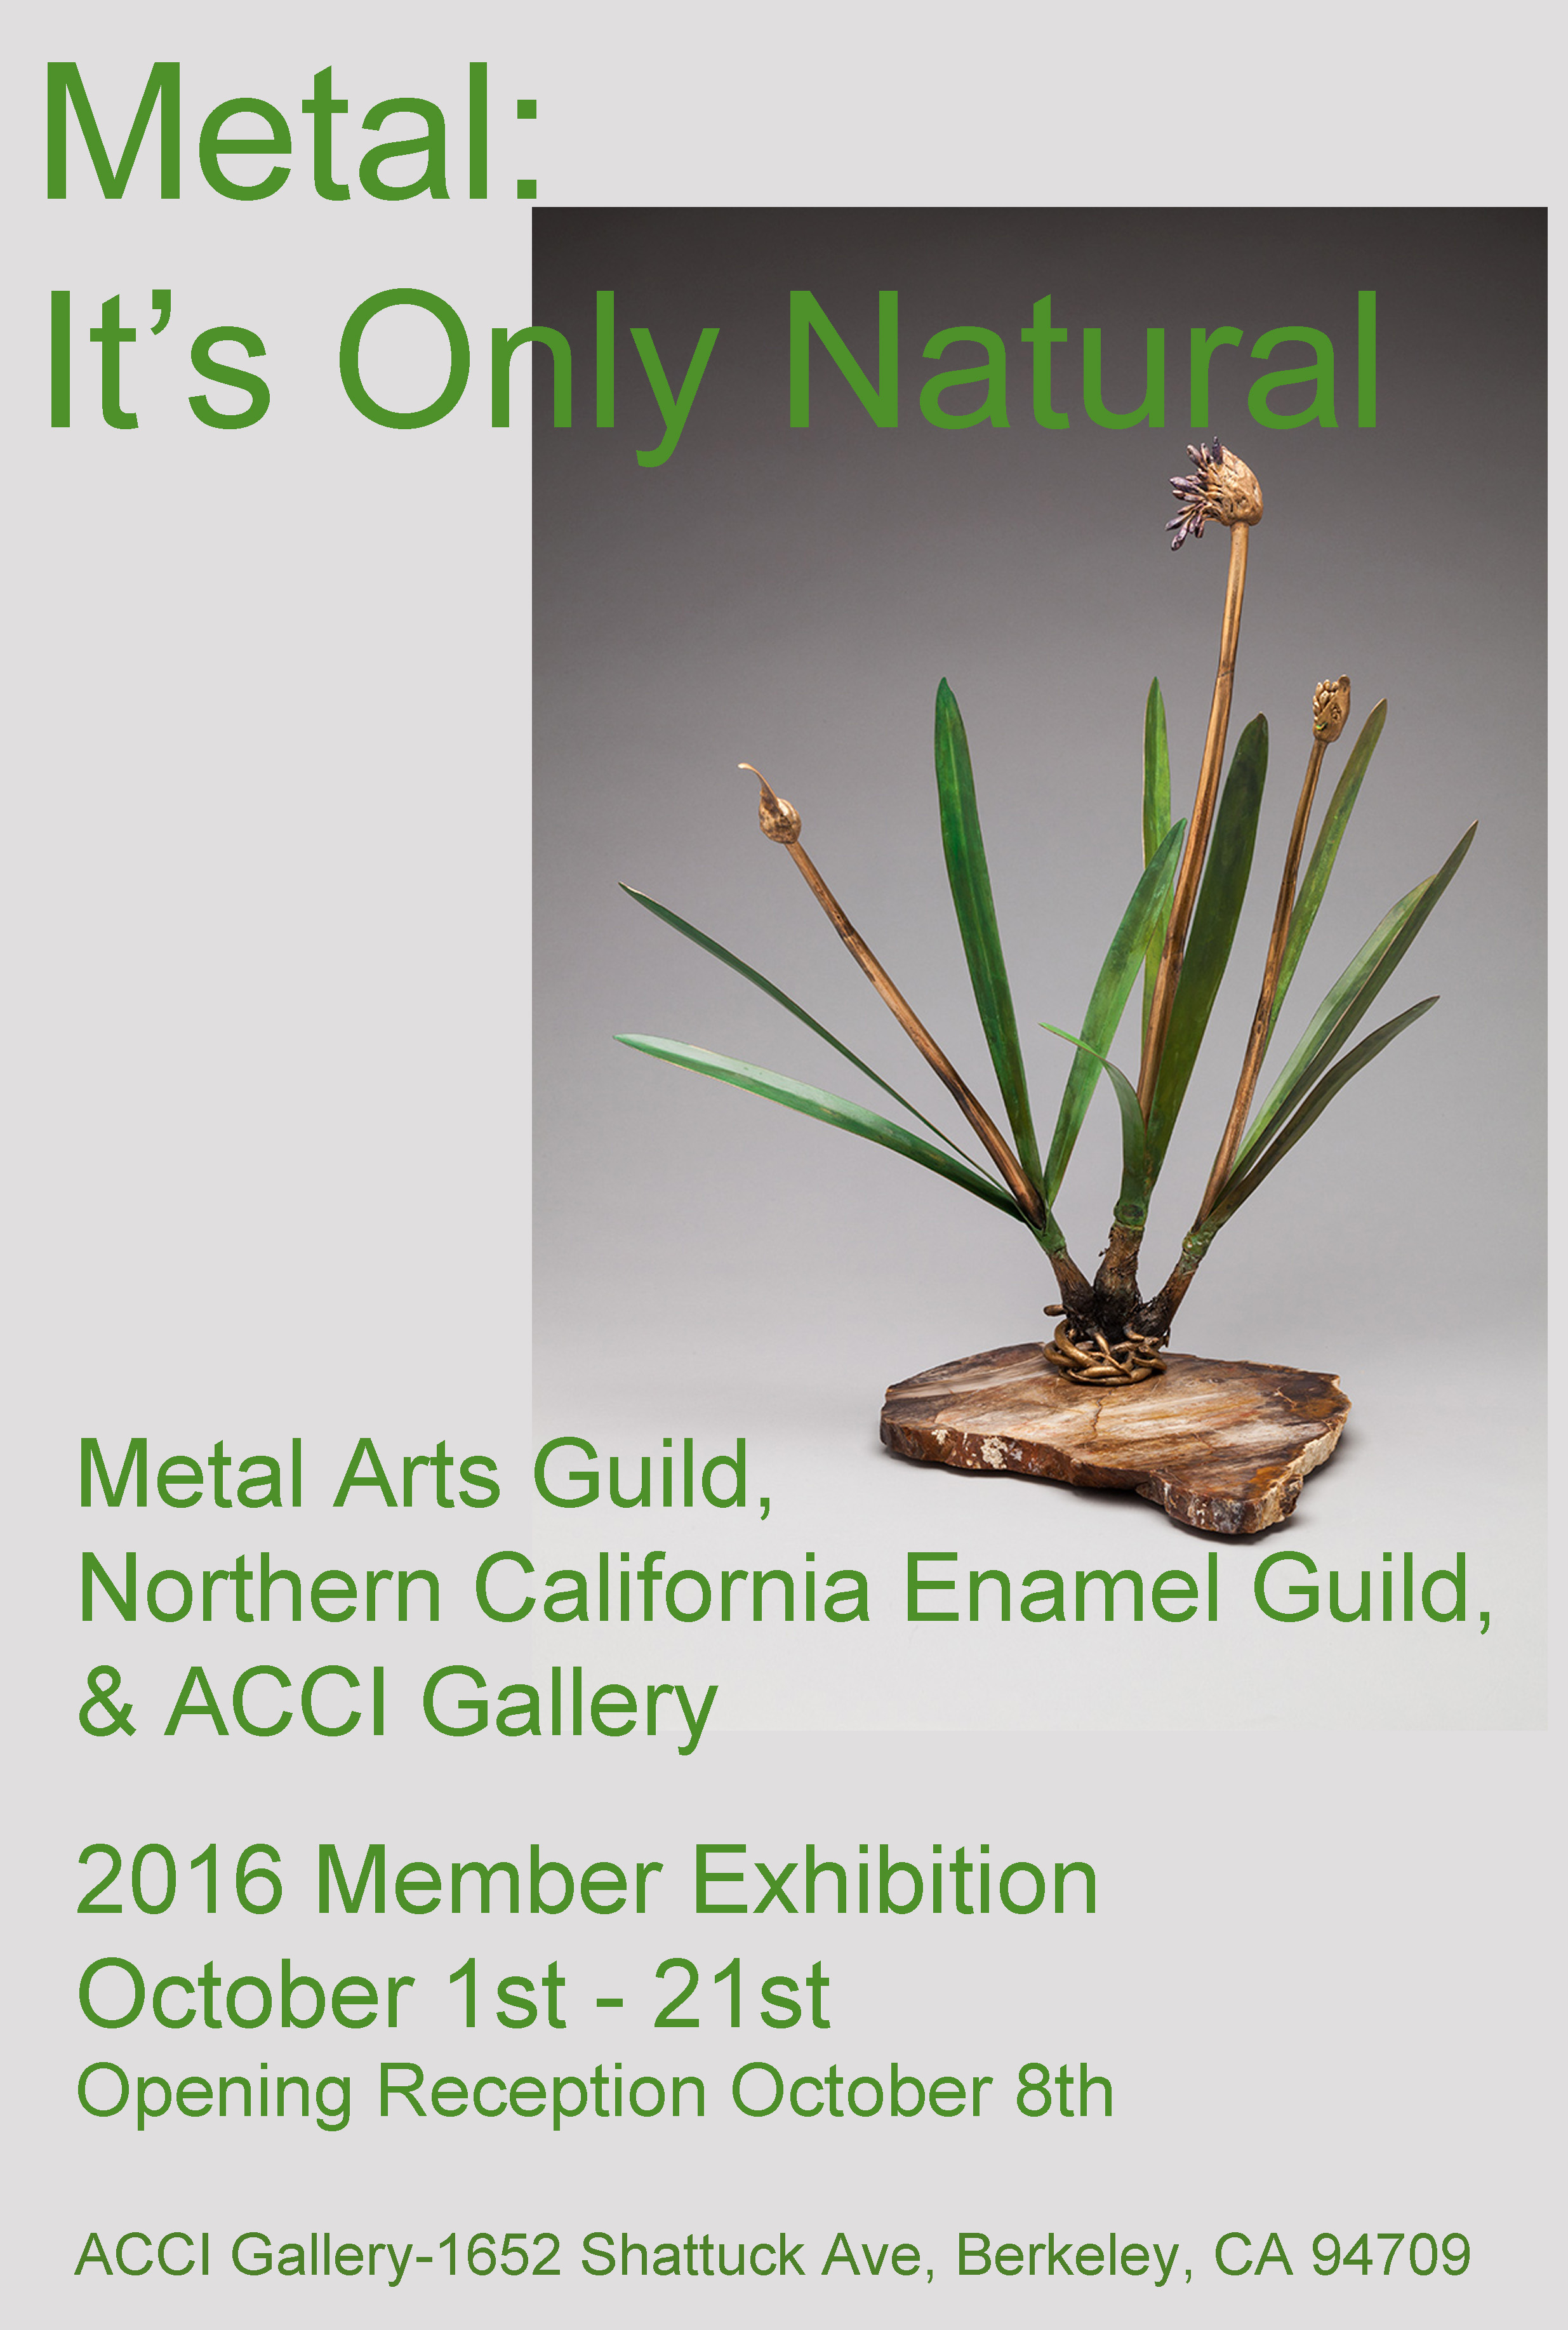 Metal: It's Only Natural NCEG, MAG, ACCI Gallery joint exhibition